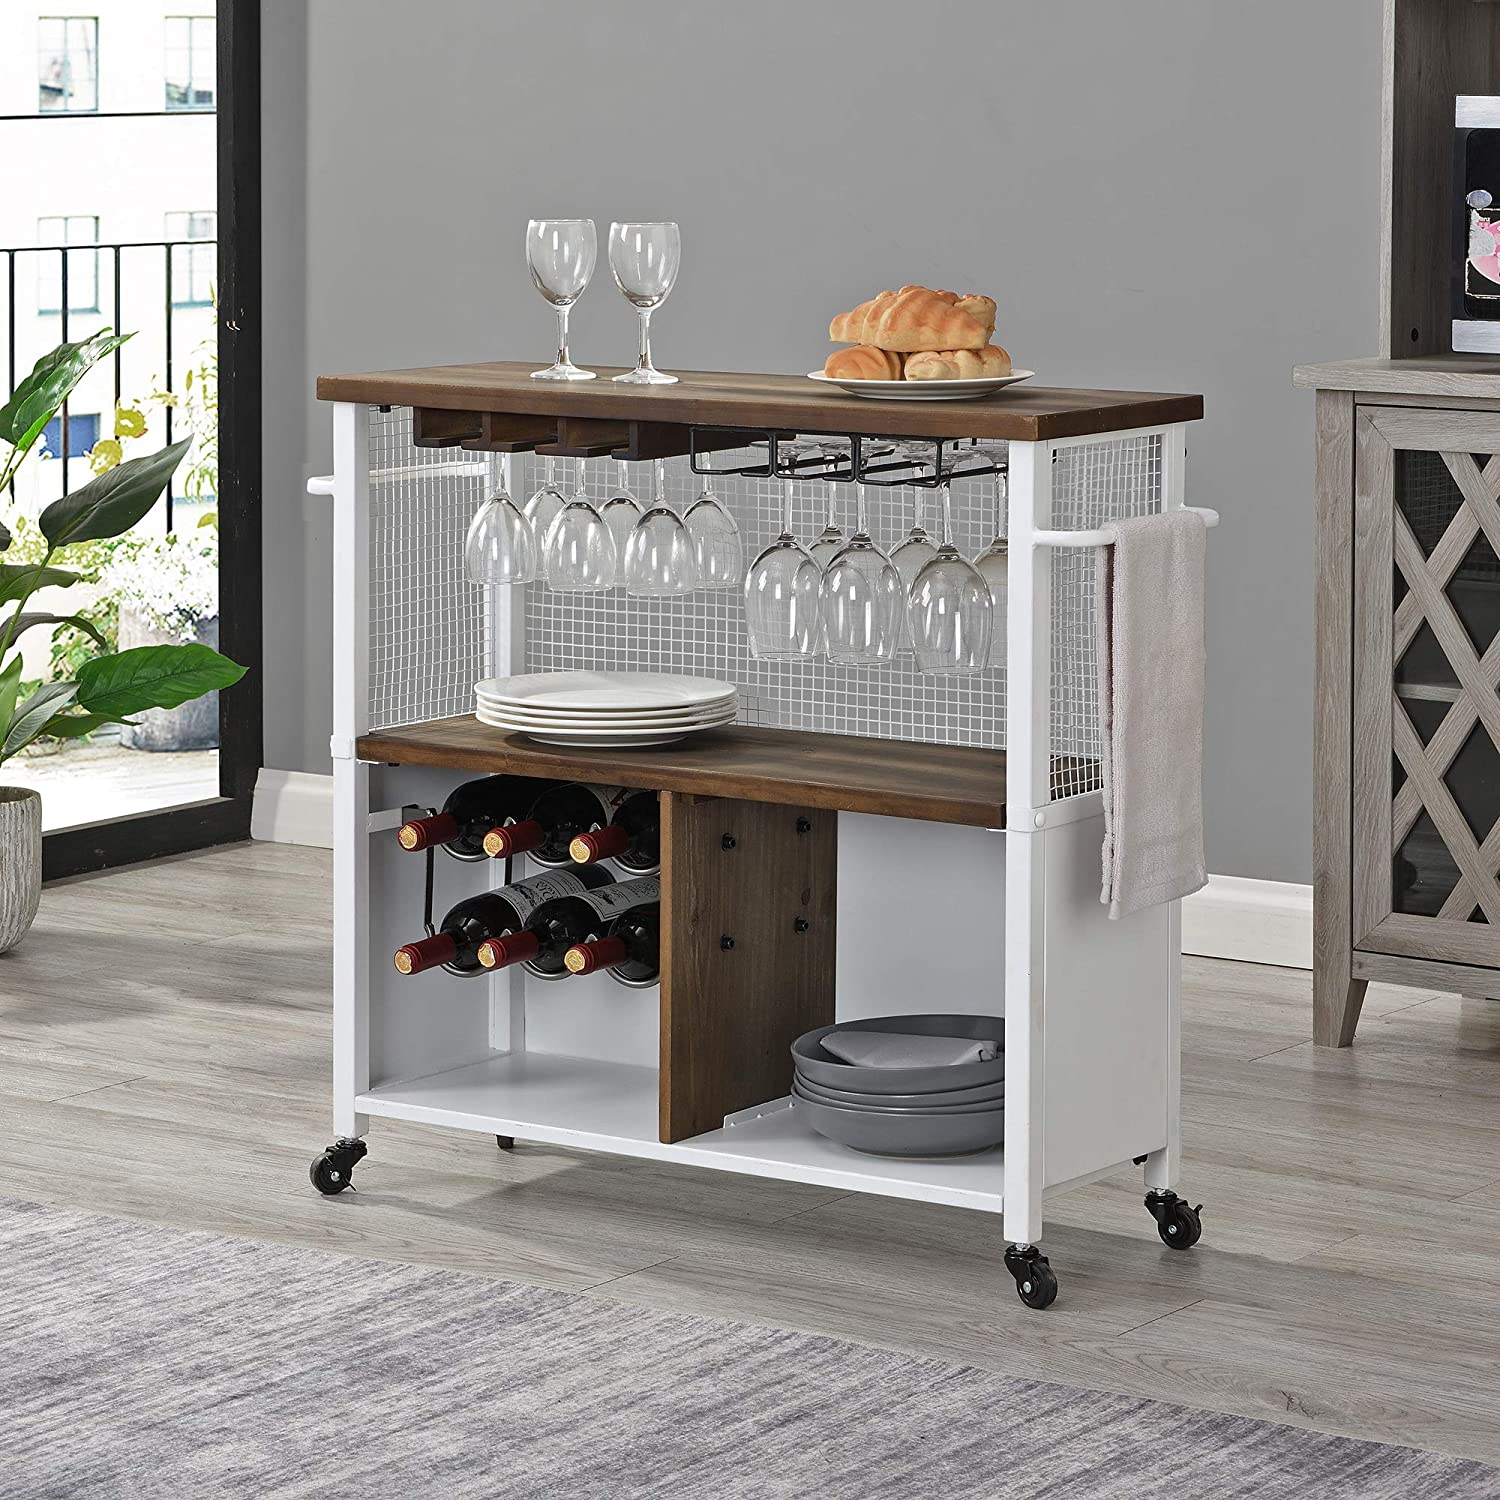 FirsTime & Co. White Chandler Farmhouse Kitchen Cart, American Designed, White, 31.5 x 12 x 31.5 inches, 70252